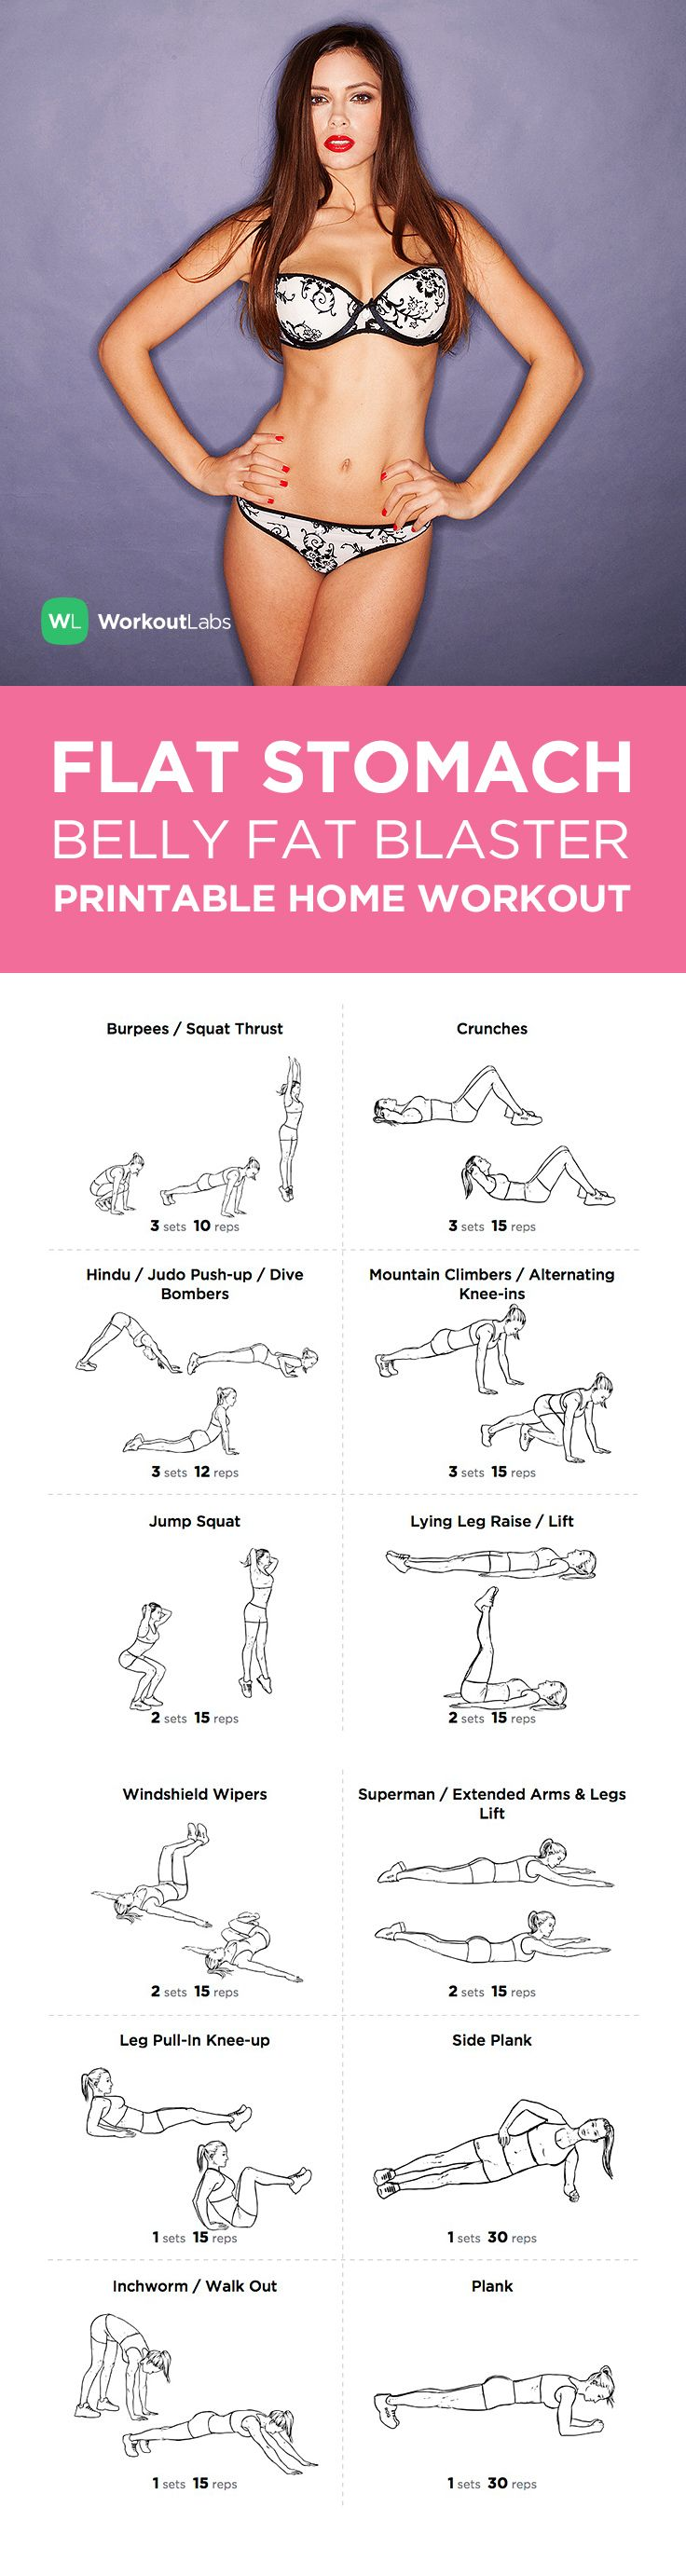 FREE PDF: Flat Stomach Belly Fat Blaster at Home Workout for Girls – visit http://wlabs.me/1pirVdg to download!